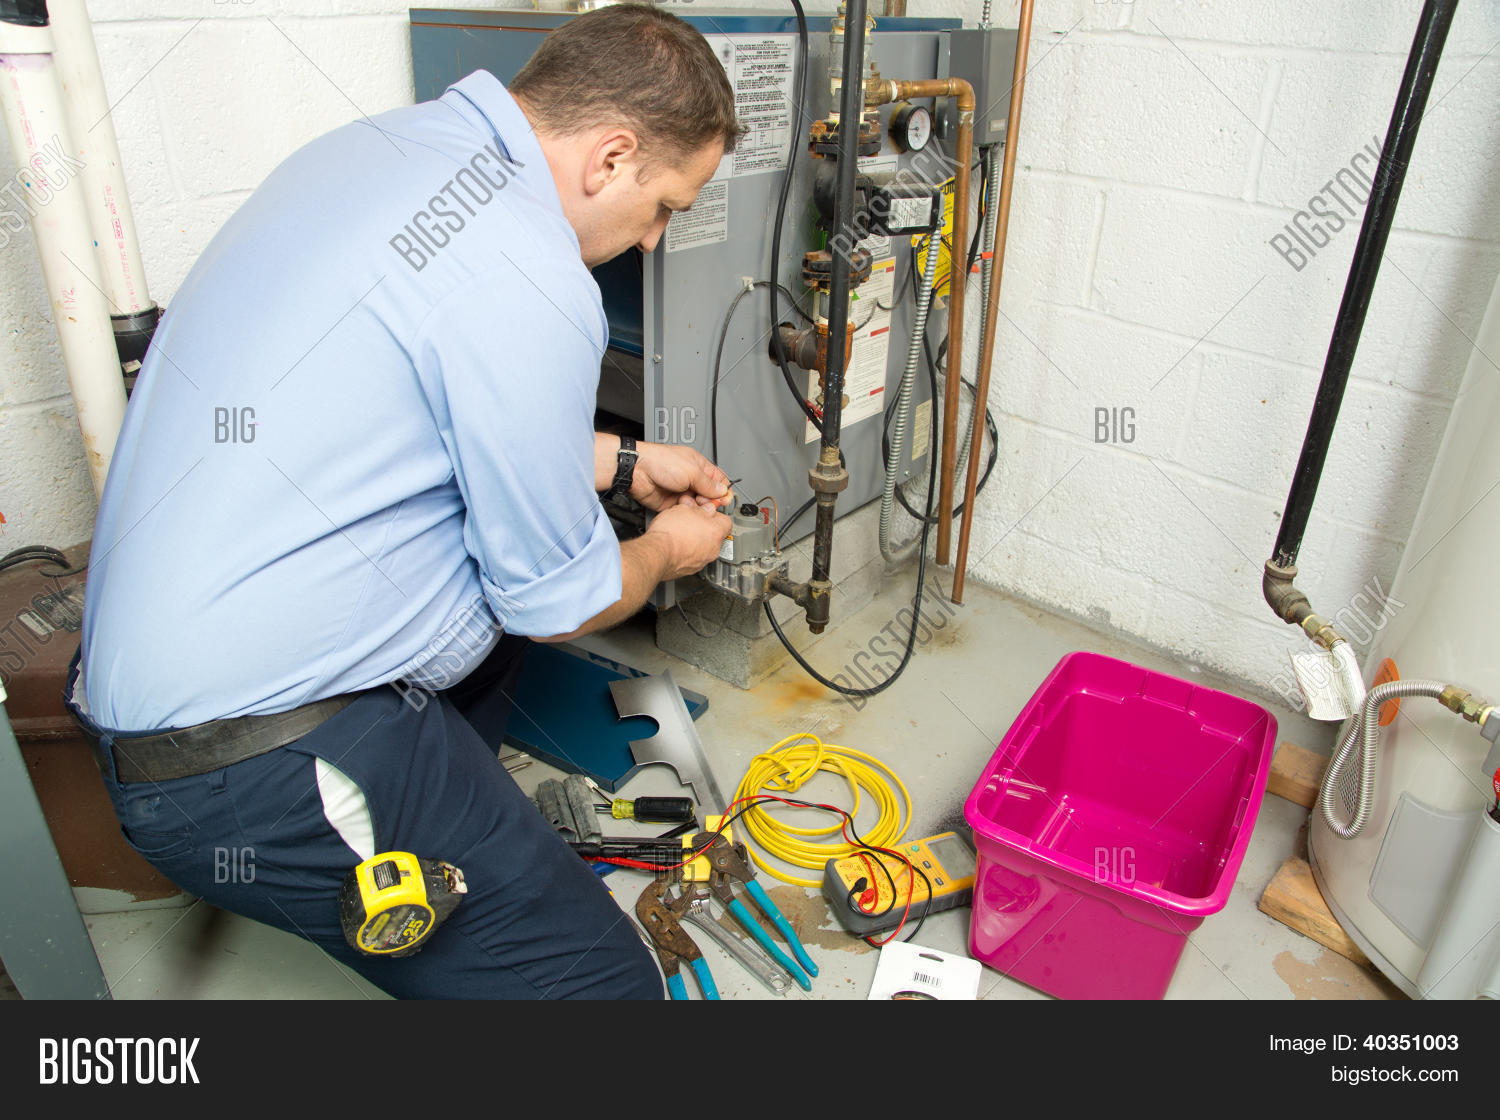 able,acrid,assembling,boiler,building,burn,burner,business,carbone,combustible,combustion,craft,craftsman,electric,electrical wires,electrician,employment,energy,expansion,exploding,extinguisher,fire,fire extinguisher,fixing,flame,furnace,furnace repair,gas,heat,heating,hot,inflammable,measurement,oven,pipe,piping,plumber,plumbing,plumbing pipes,pose,professional,repair,reparation,service,site,supply,system,tank,thermal,thermostat,tools,water,worker,works